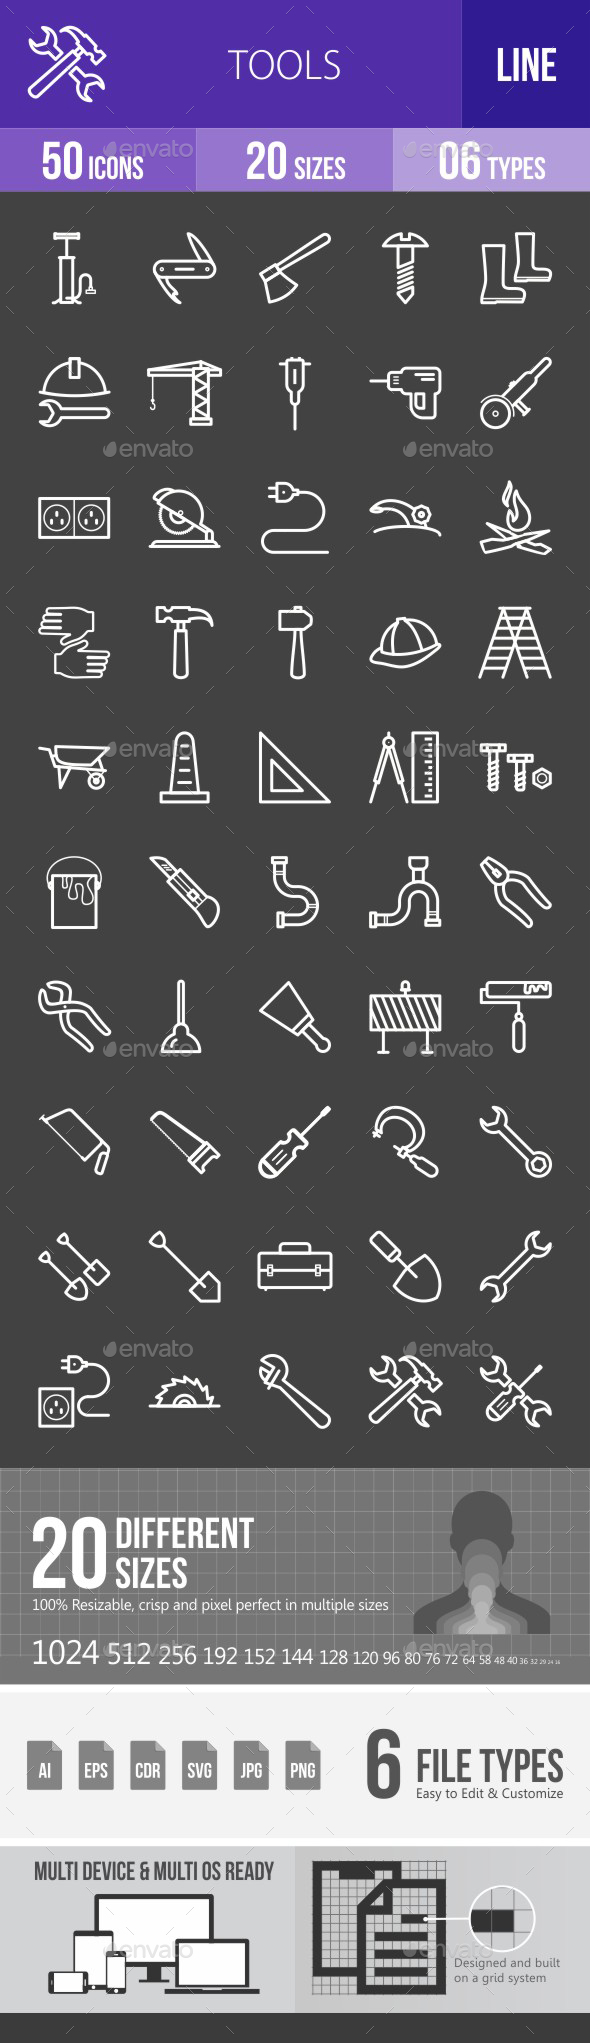 Tools Line Inverted Icons - Icons